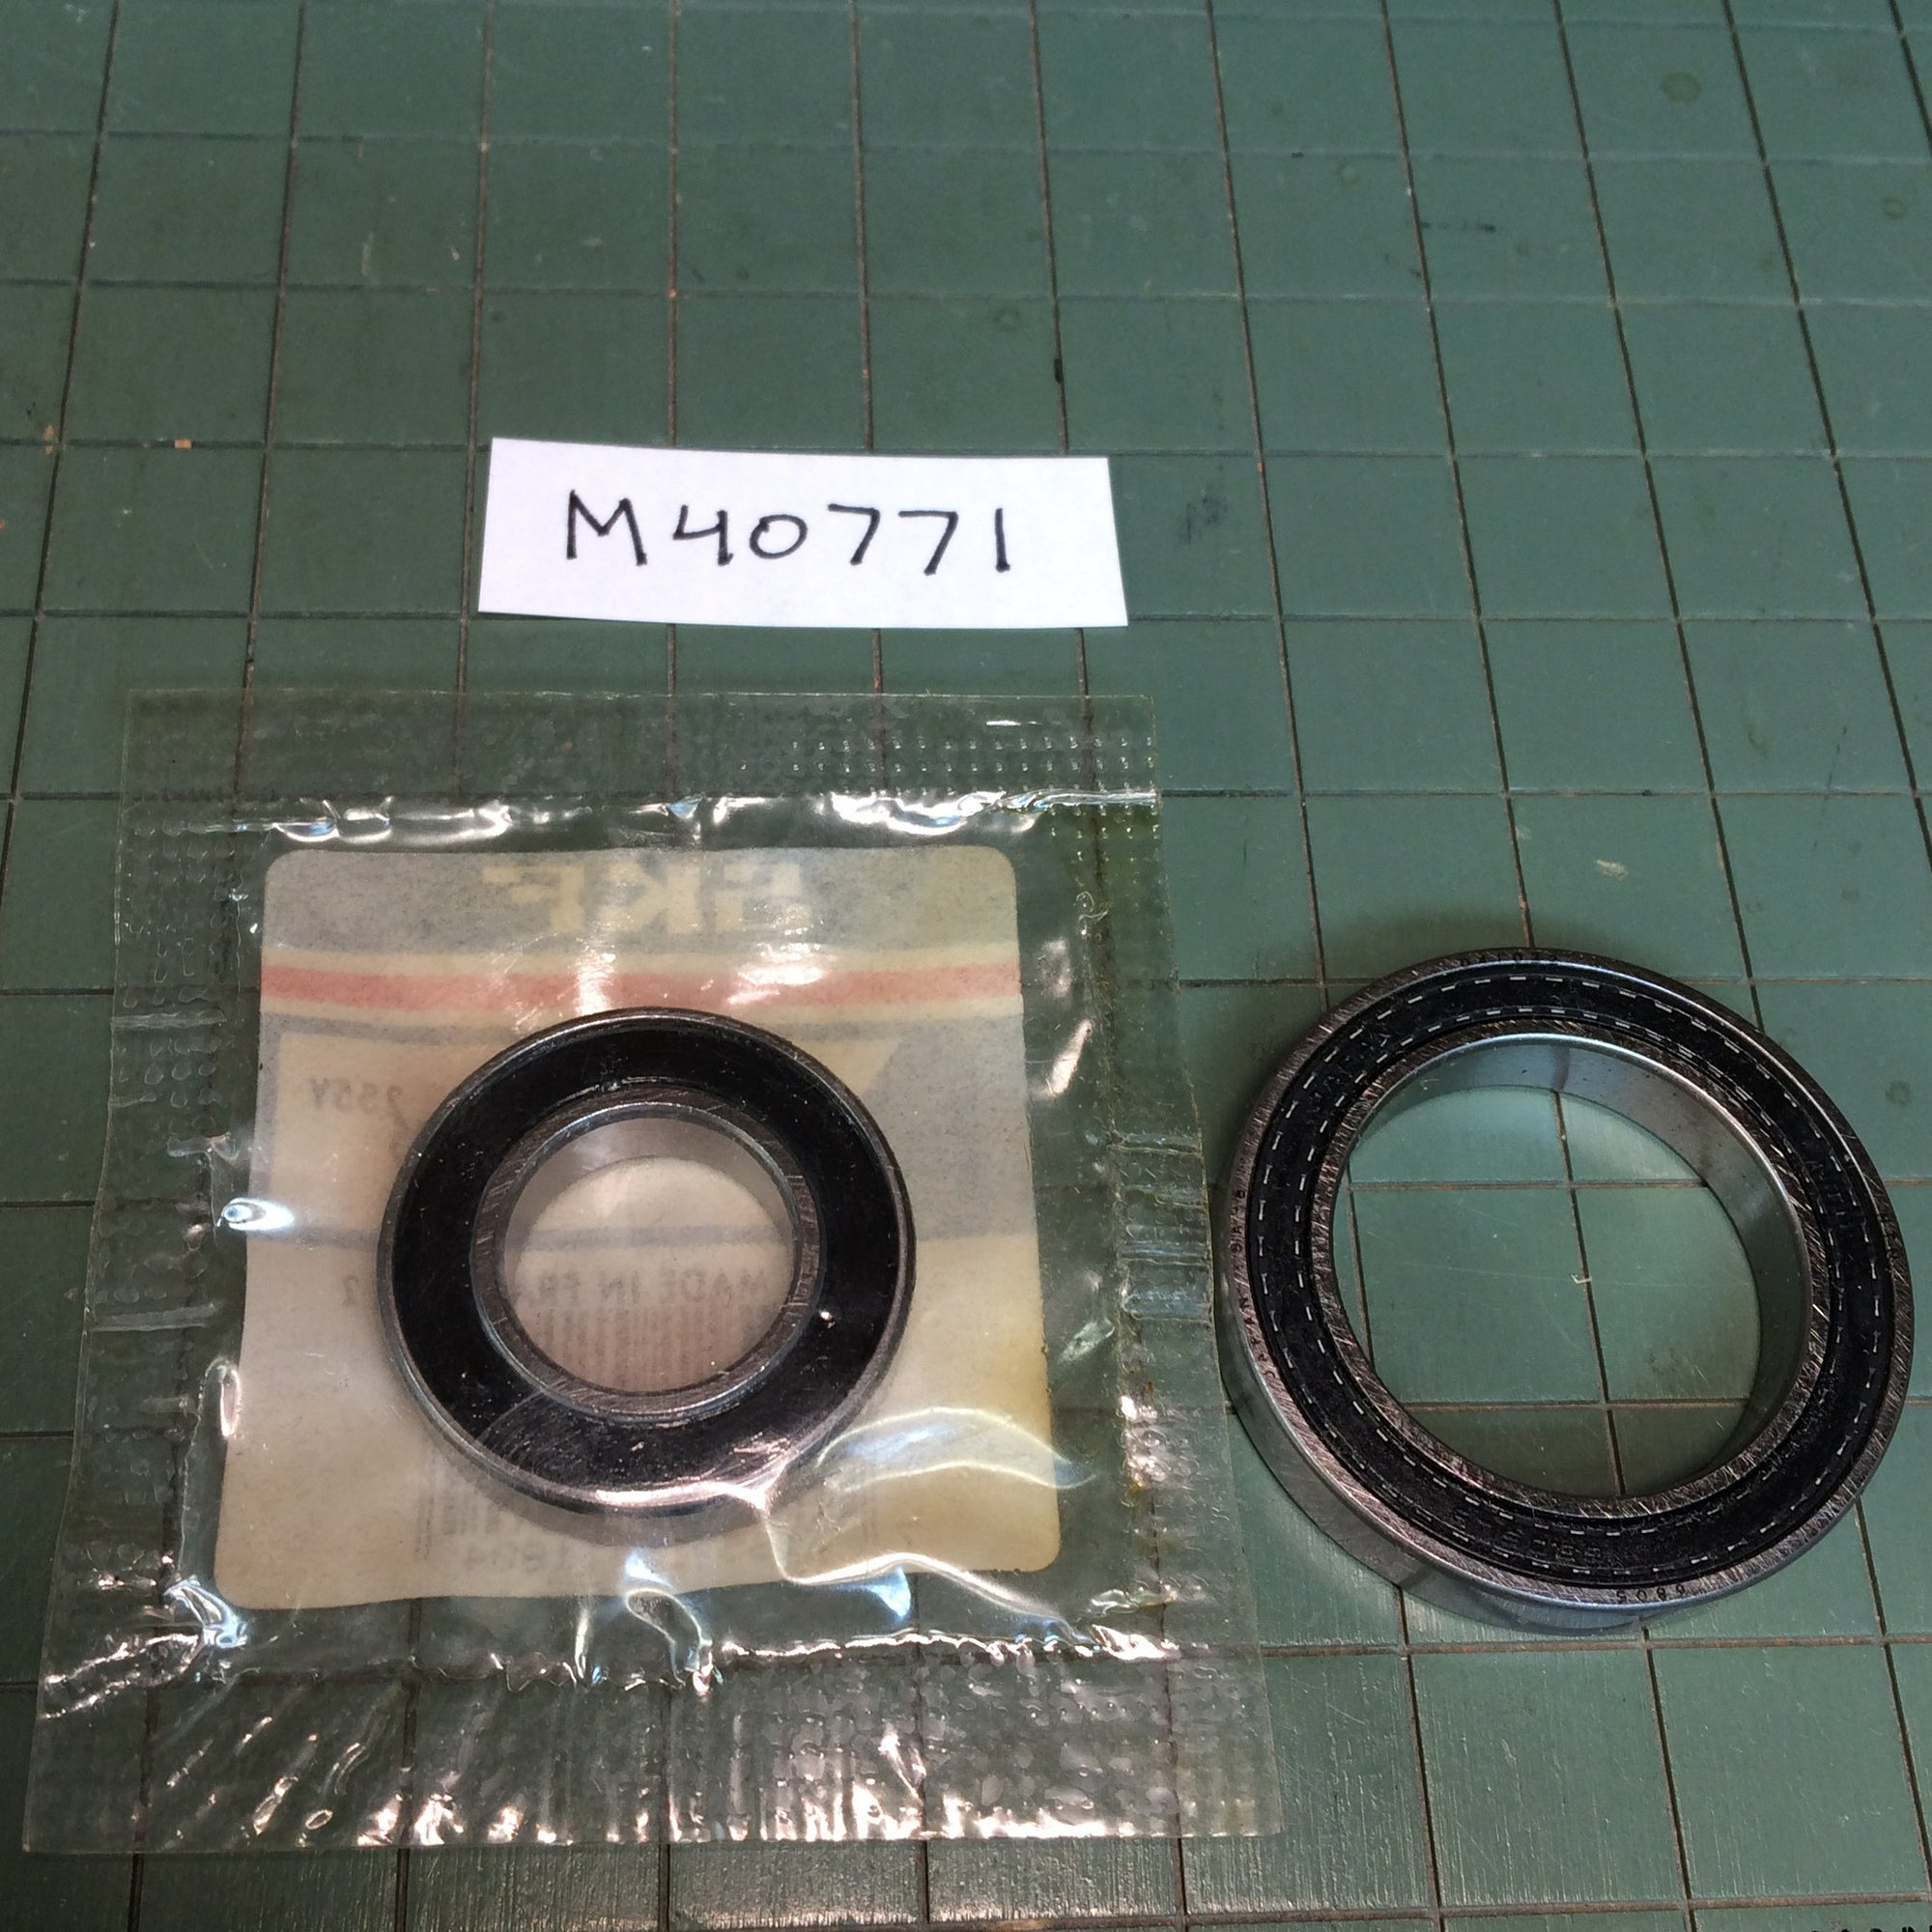 Mavic M40771 Bearings (Lefty Hub)